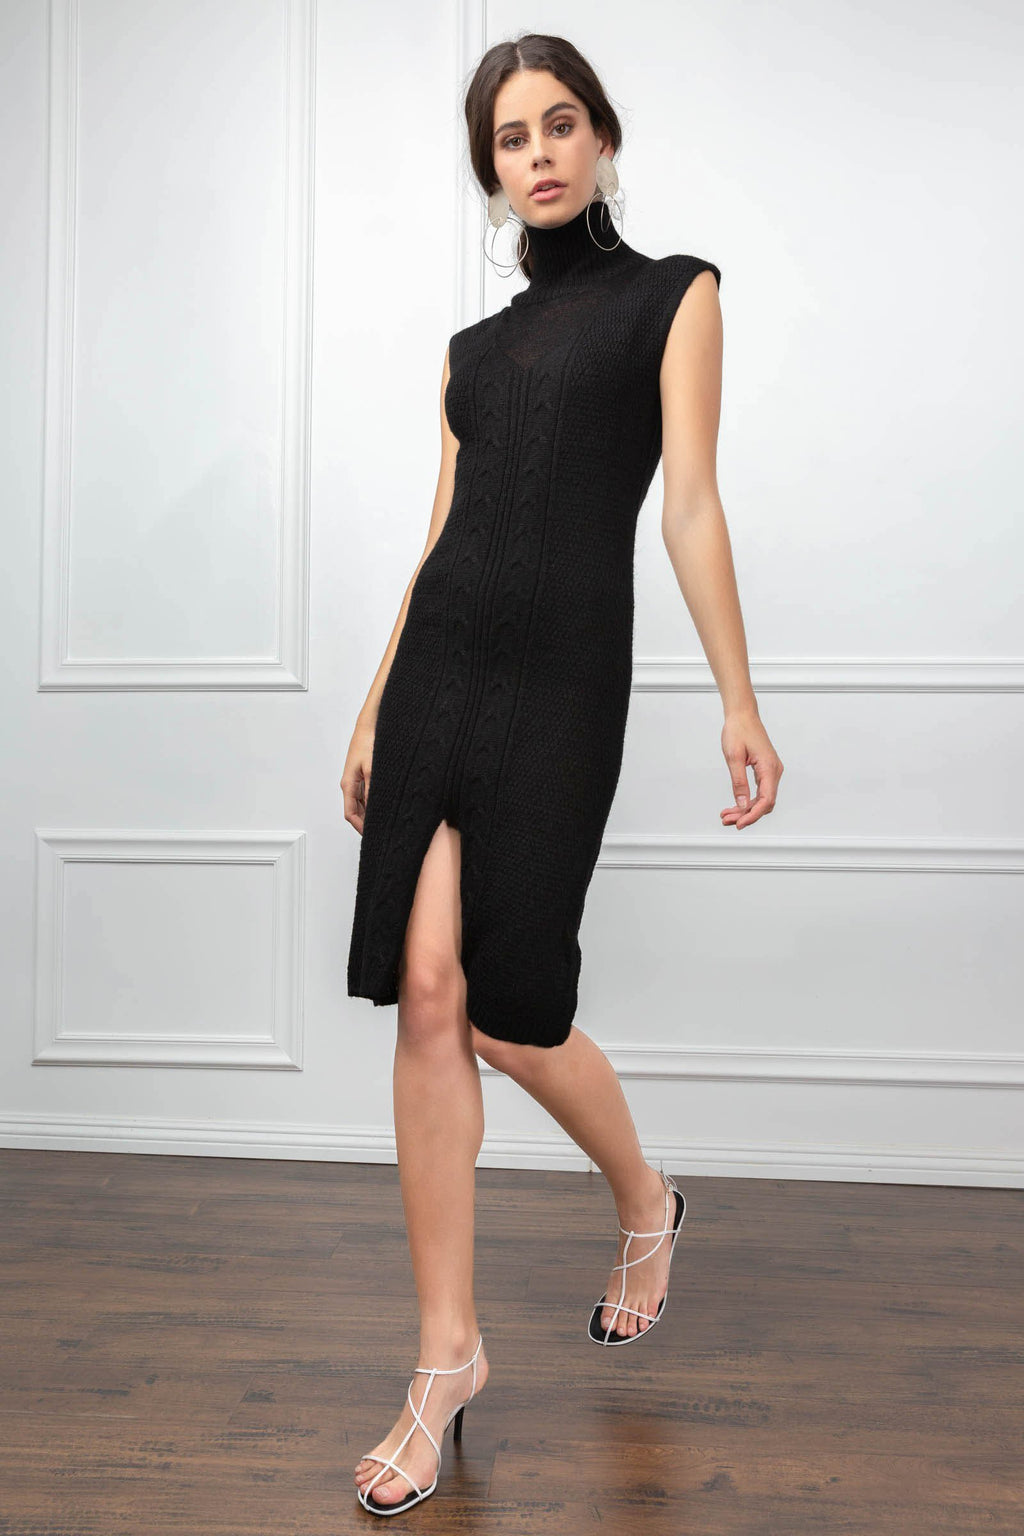 Annabelle Knit Dress in Knitwear by J.ING - an L.A based women's fashion line